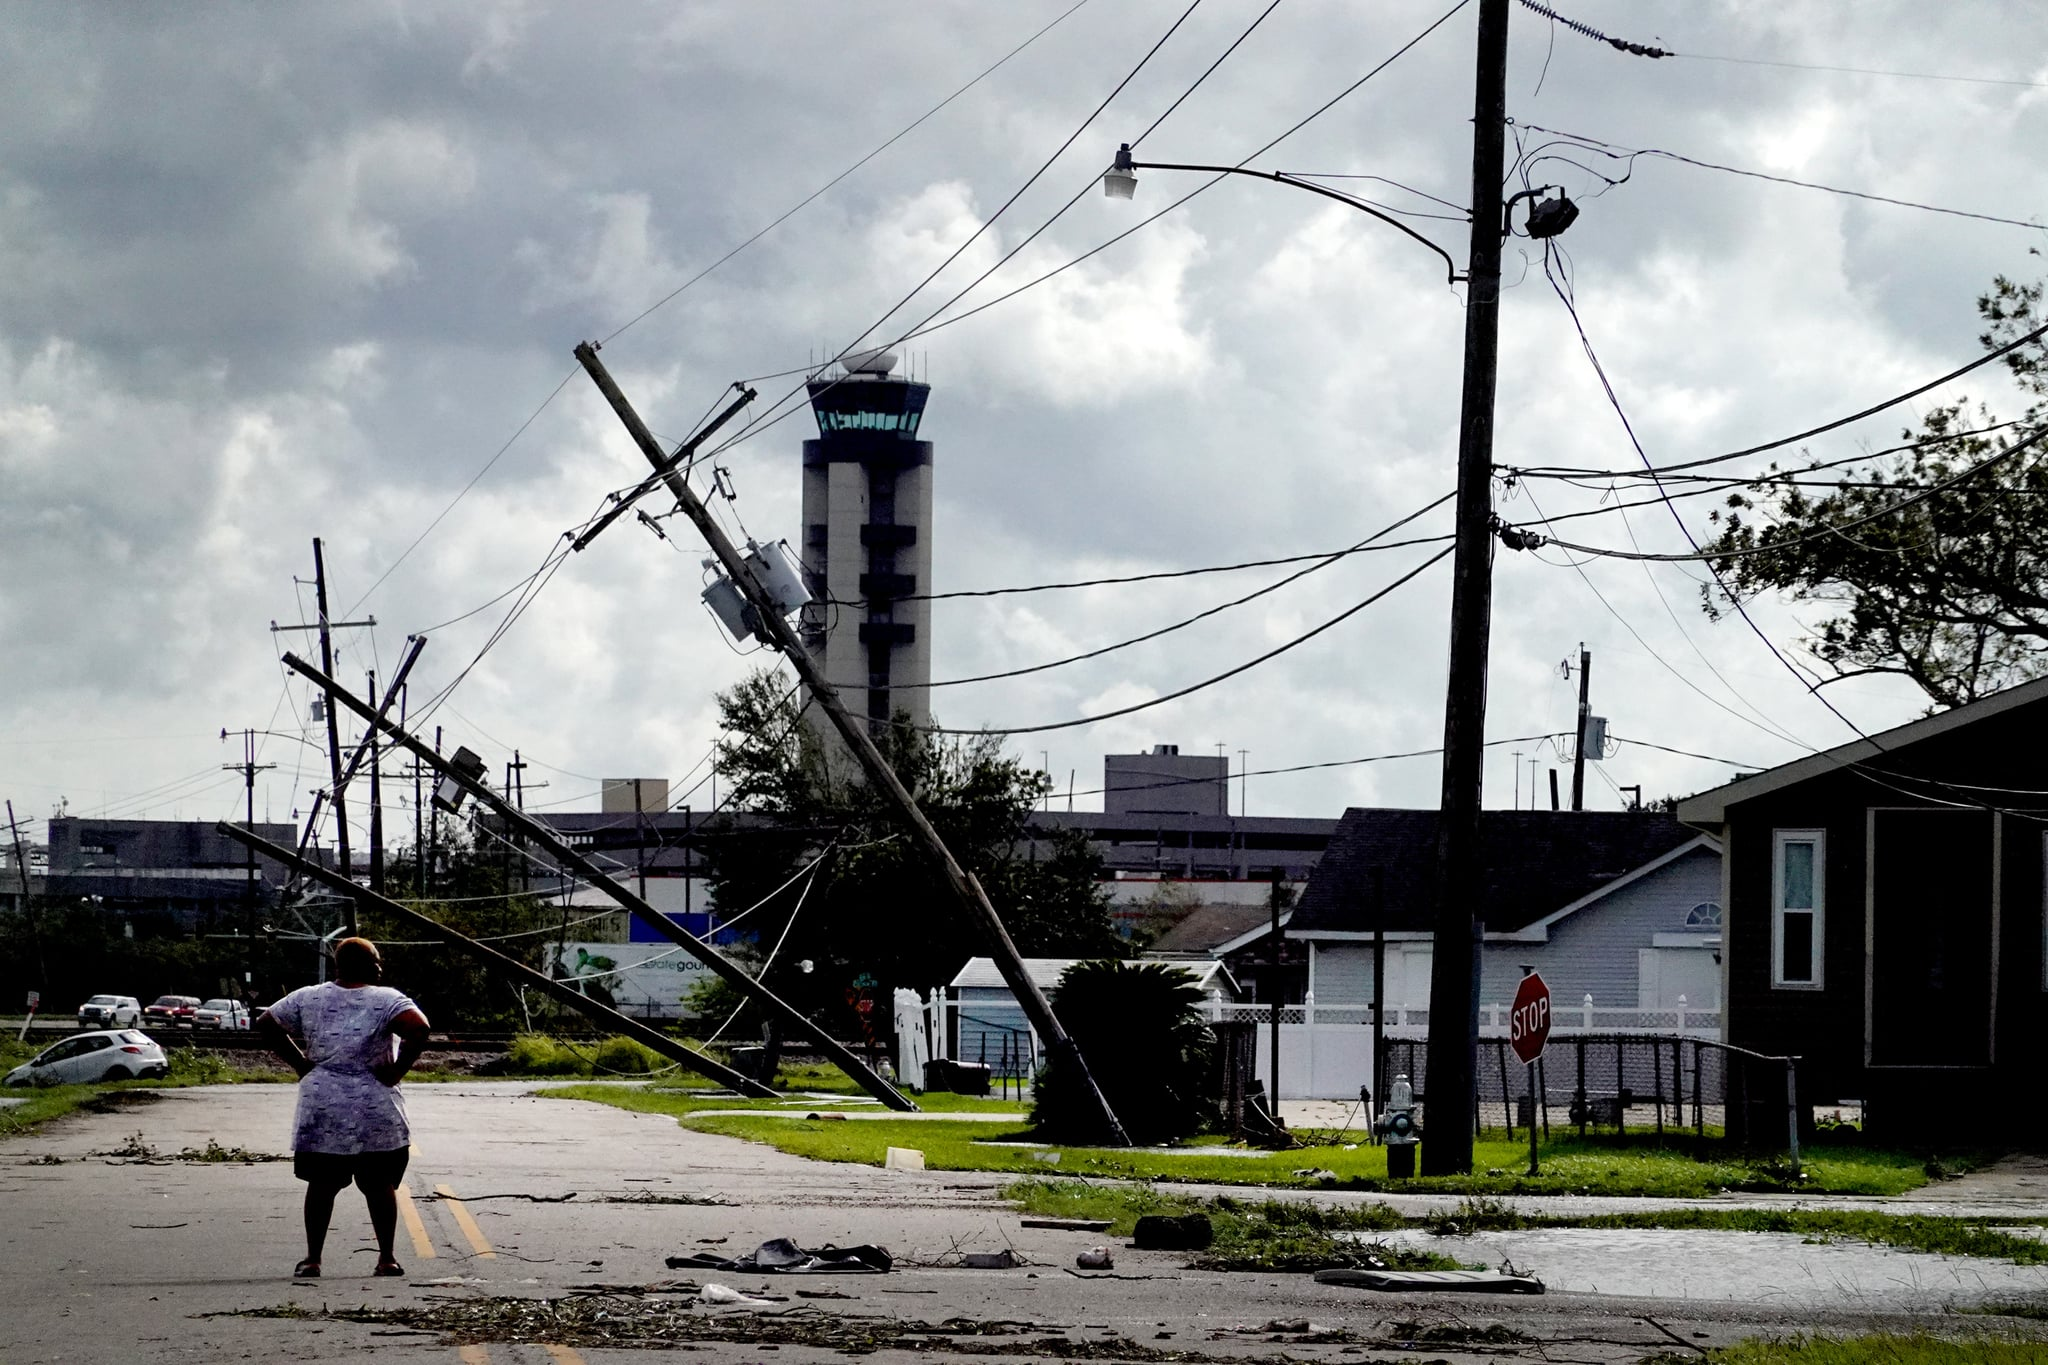 KENNER, LOUISIANA - AUGUST 30: A woman looks over damage to a neighborhood caused by Hurricane Ida on August 30, 2021 in Kenner, Louisiana. Ida made landfall yesterday as a category 4 storm southwest of New Orleans.  (Photo by Scott Olson/Getty Images)